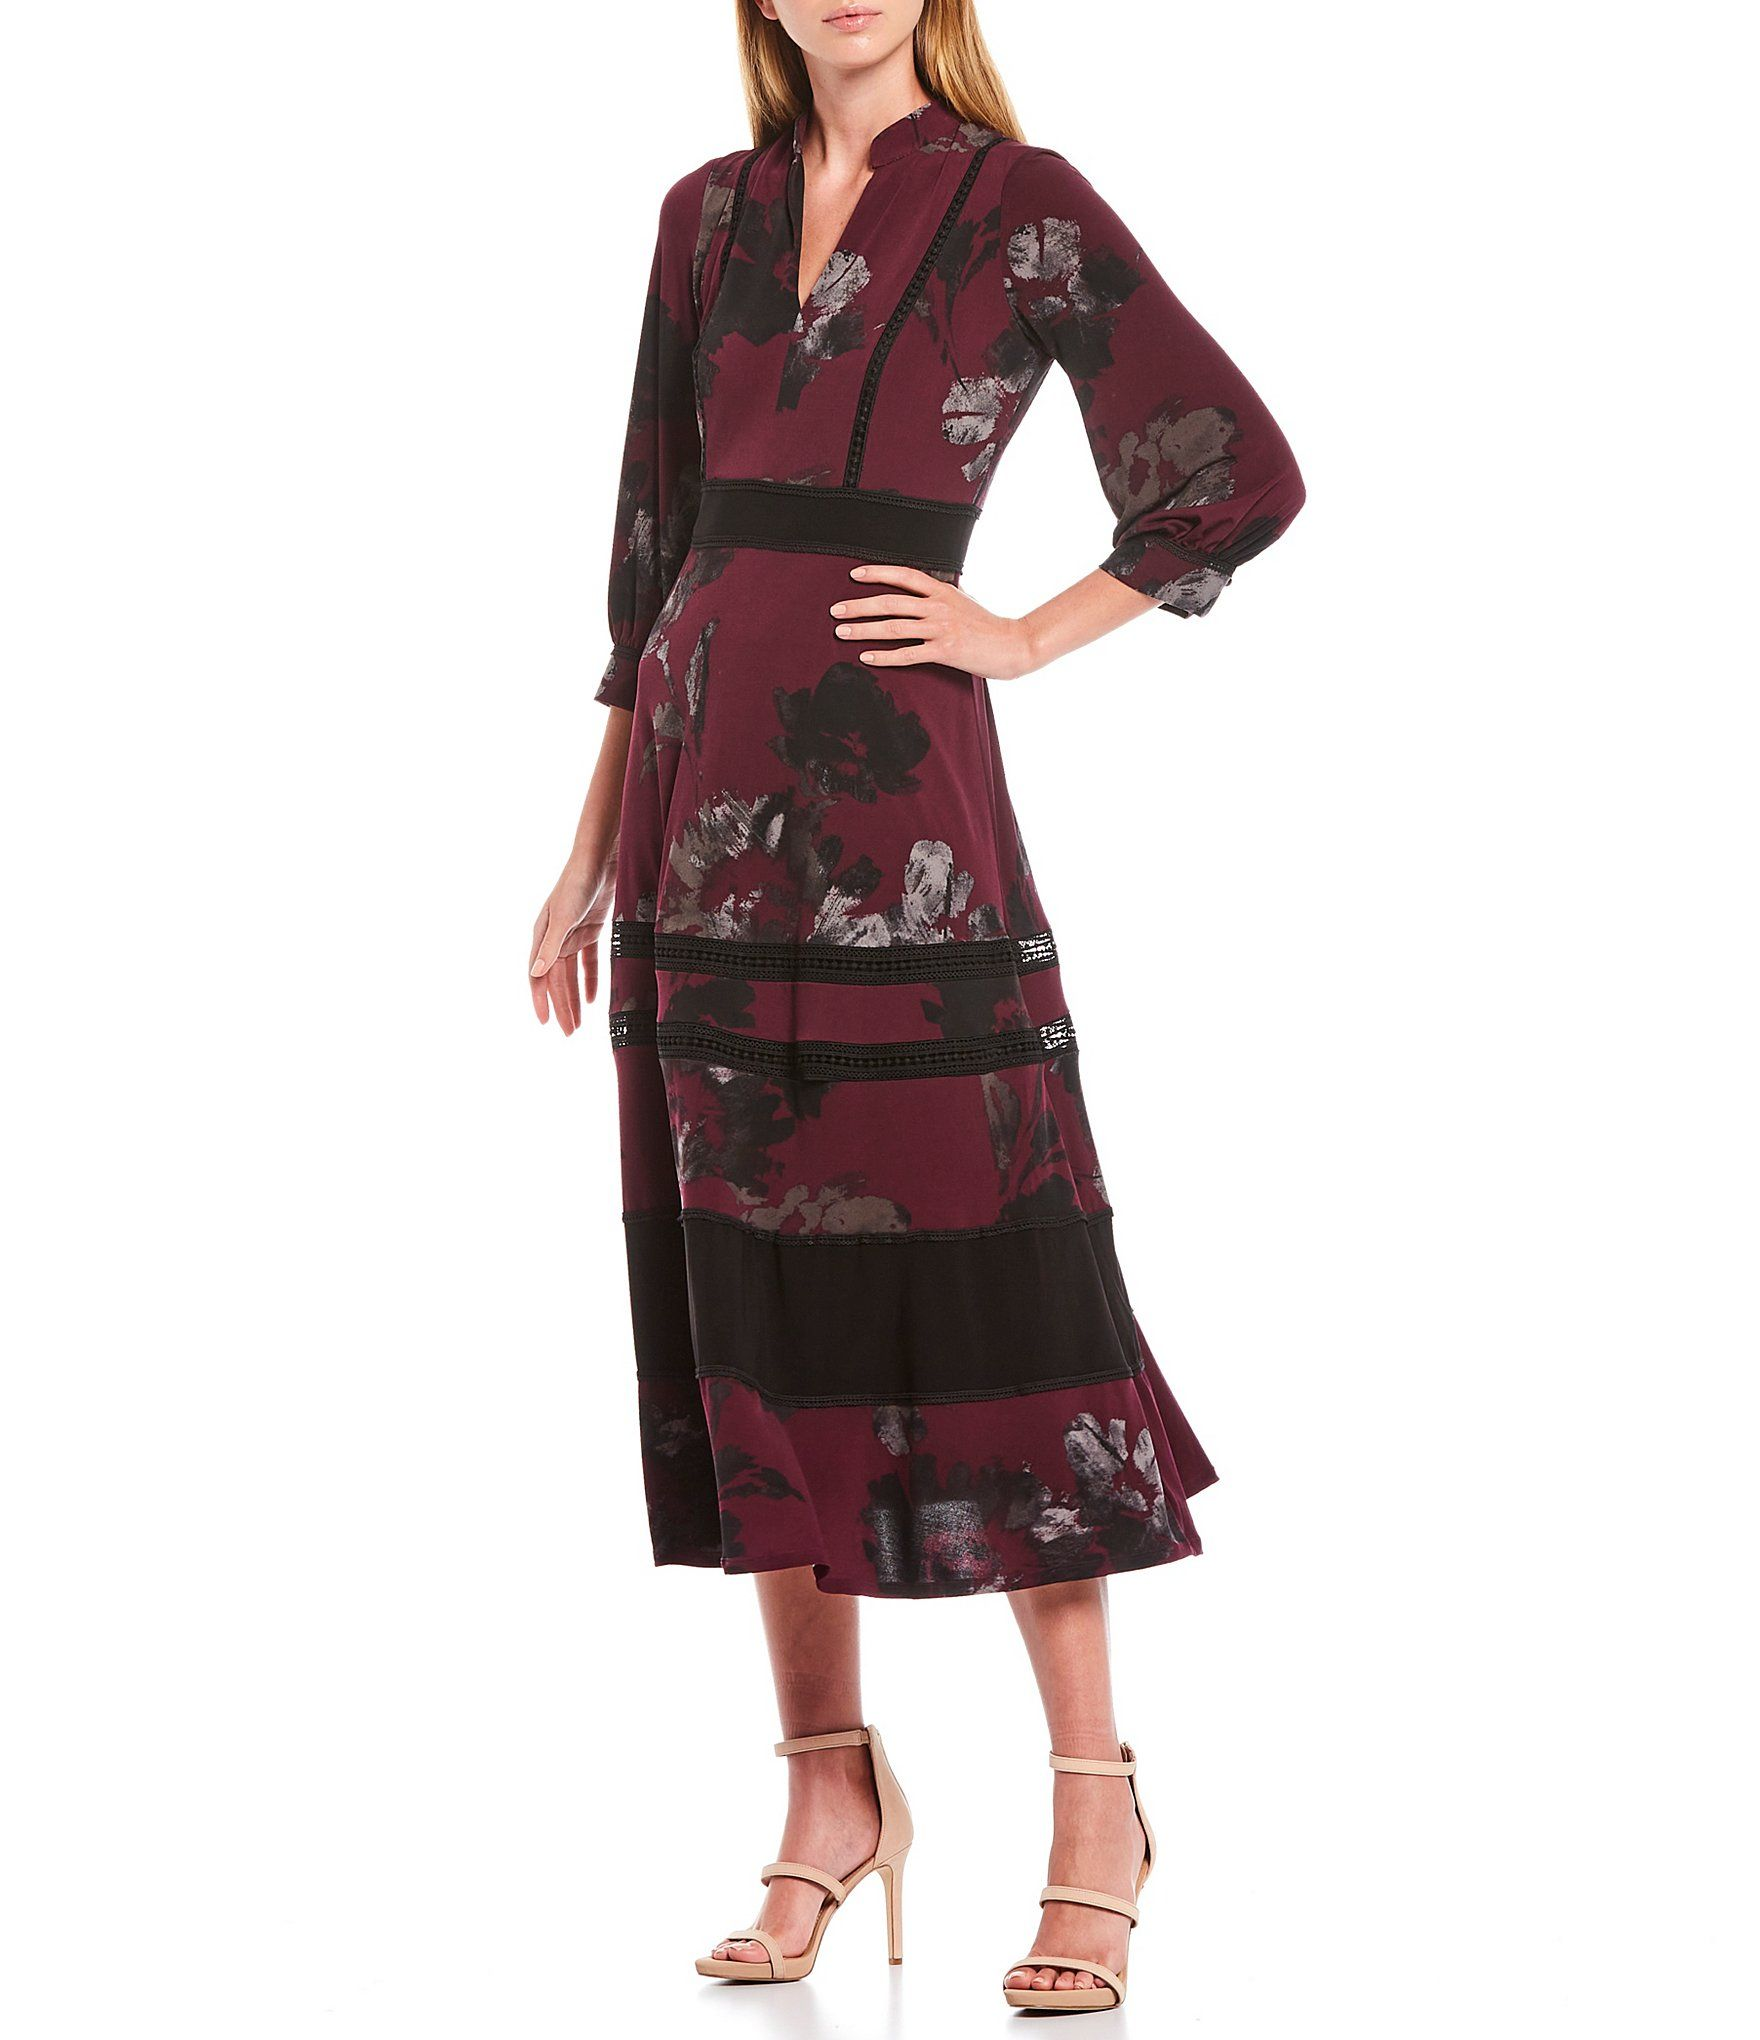 Taylor Floral Print V Neck 3 4 Sleeve Jersey Midi Dress Dillard S In 2020 Midi Dress With Sleeves Dresses Dressy Casual Outfits [ 2040 x 1760 Pixel ]